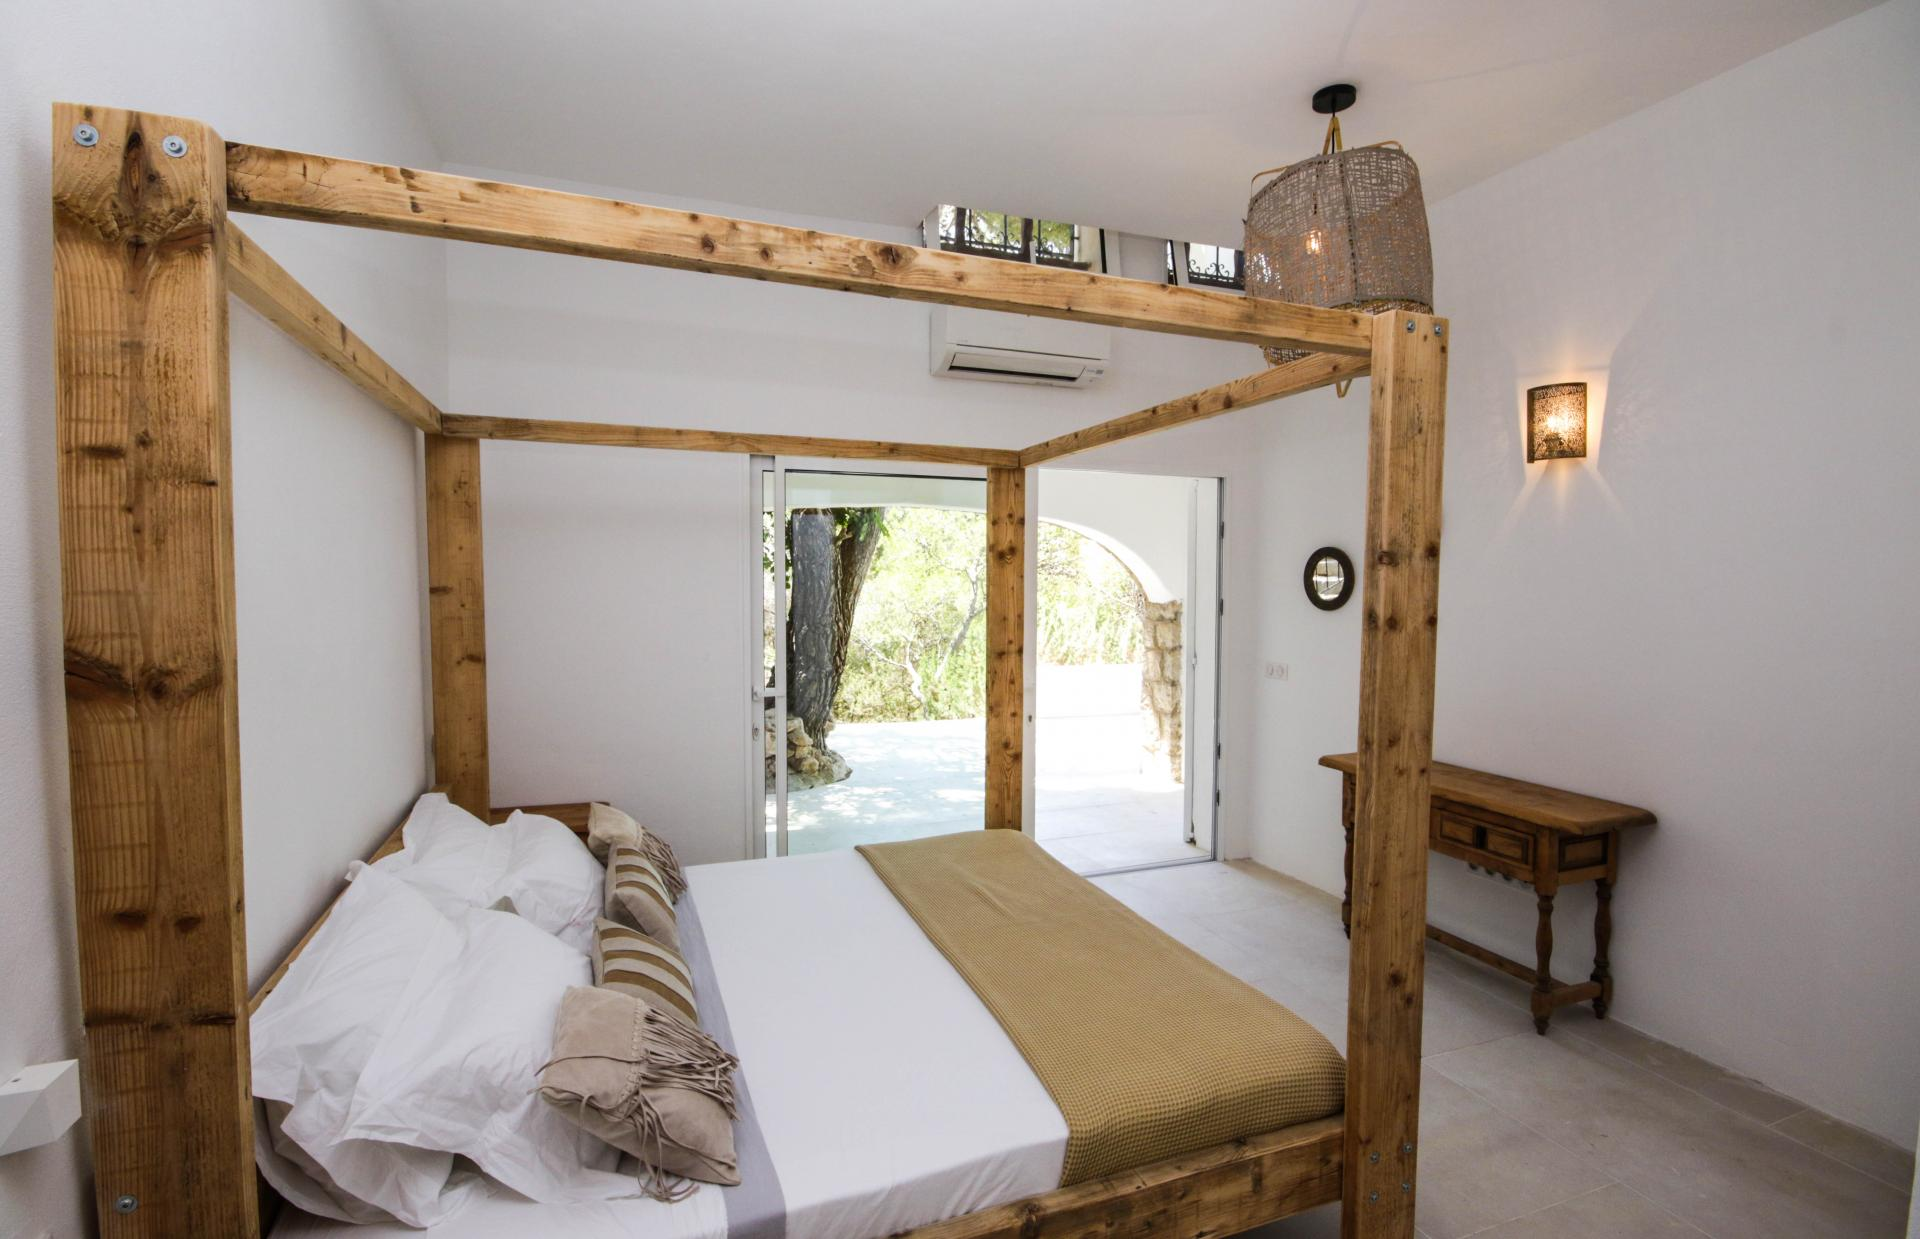 Cozy and romantic house in the north of Ibiza with splendid sunset view in Portinax